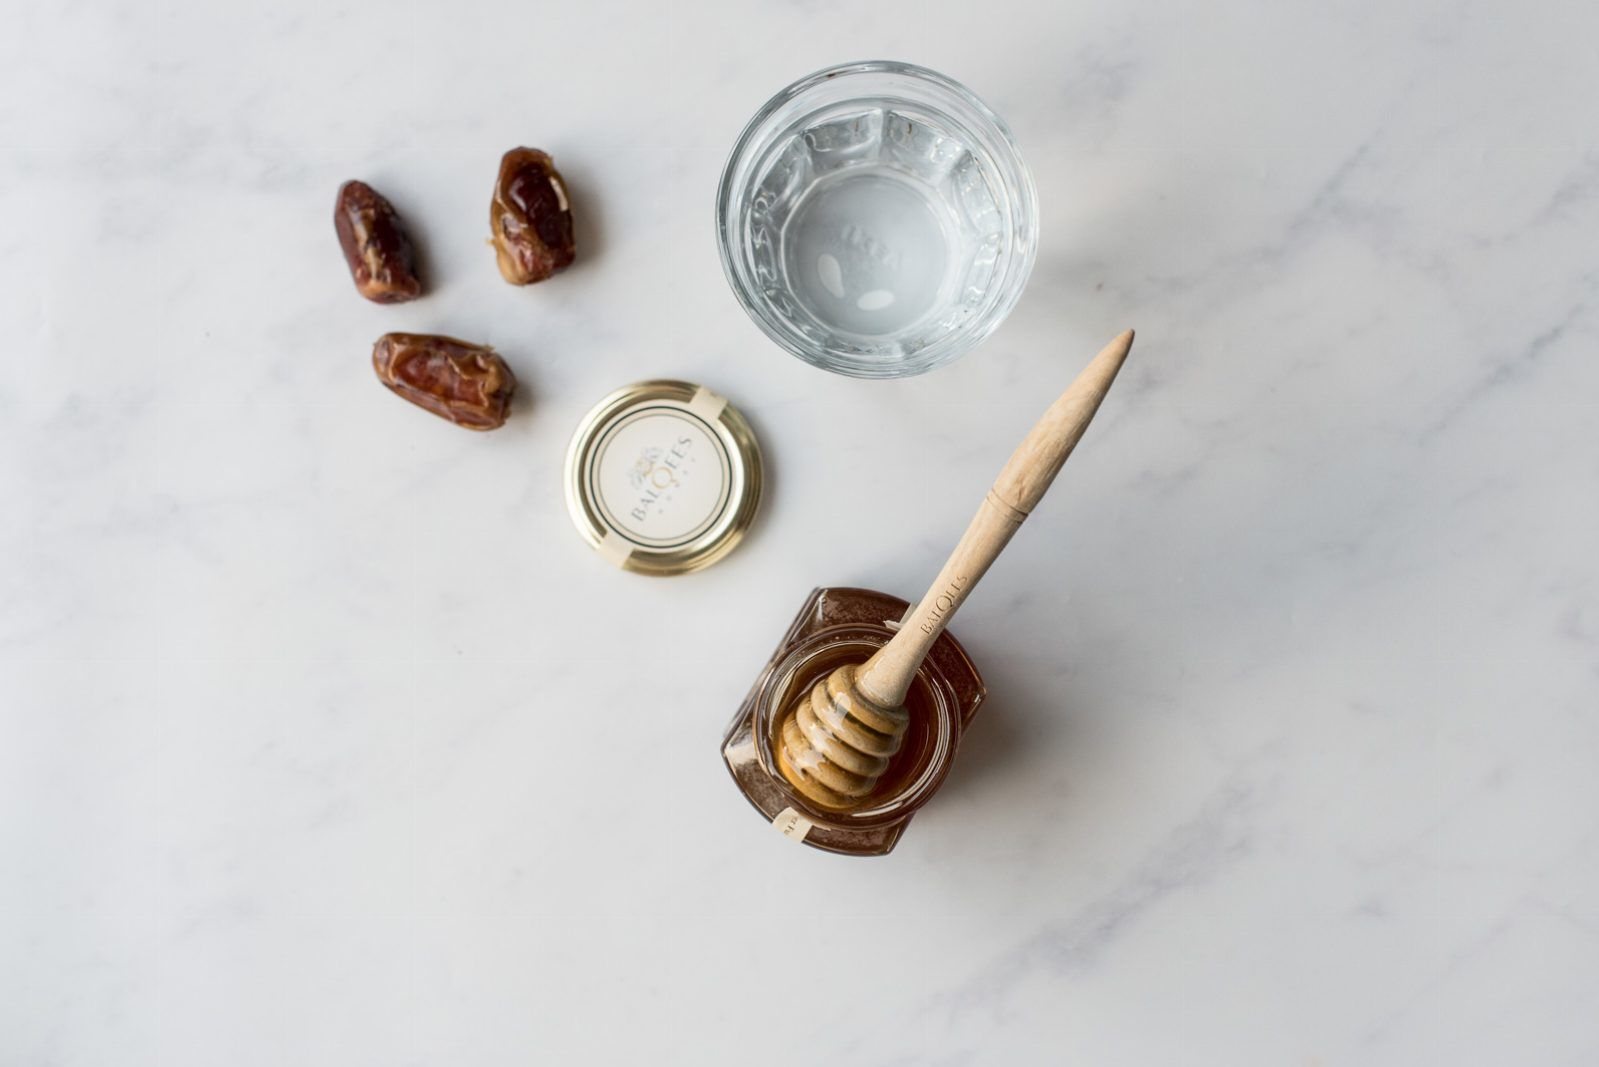 jar of honey, glass of water and dates